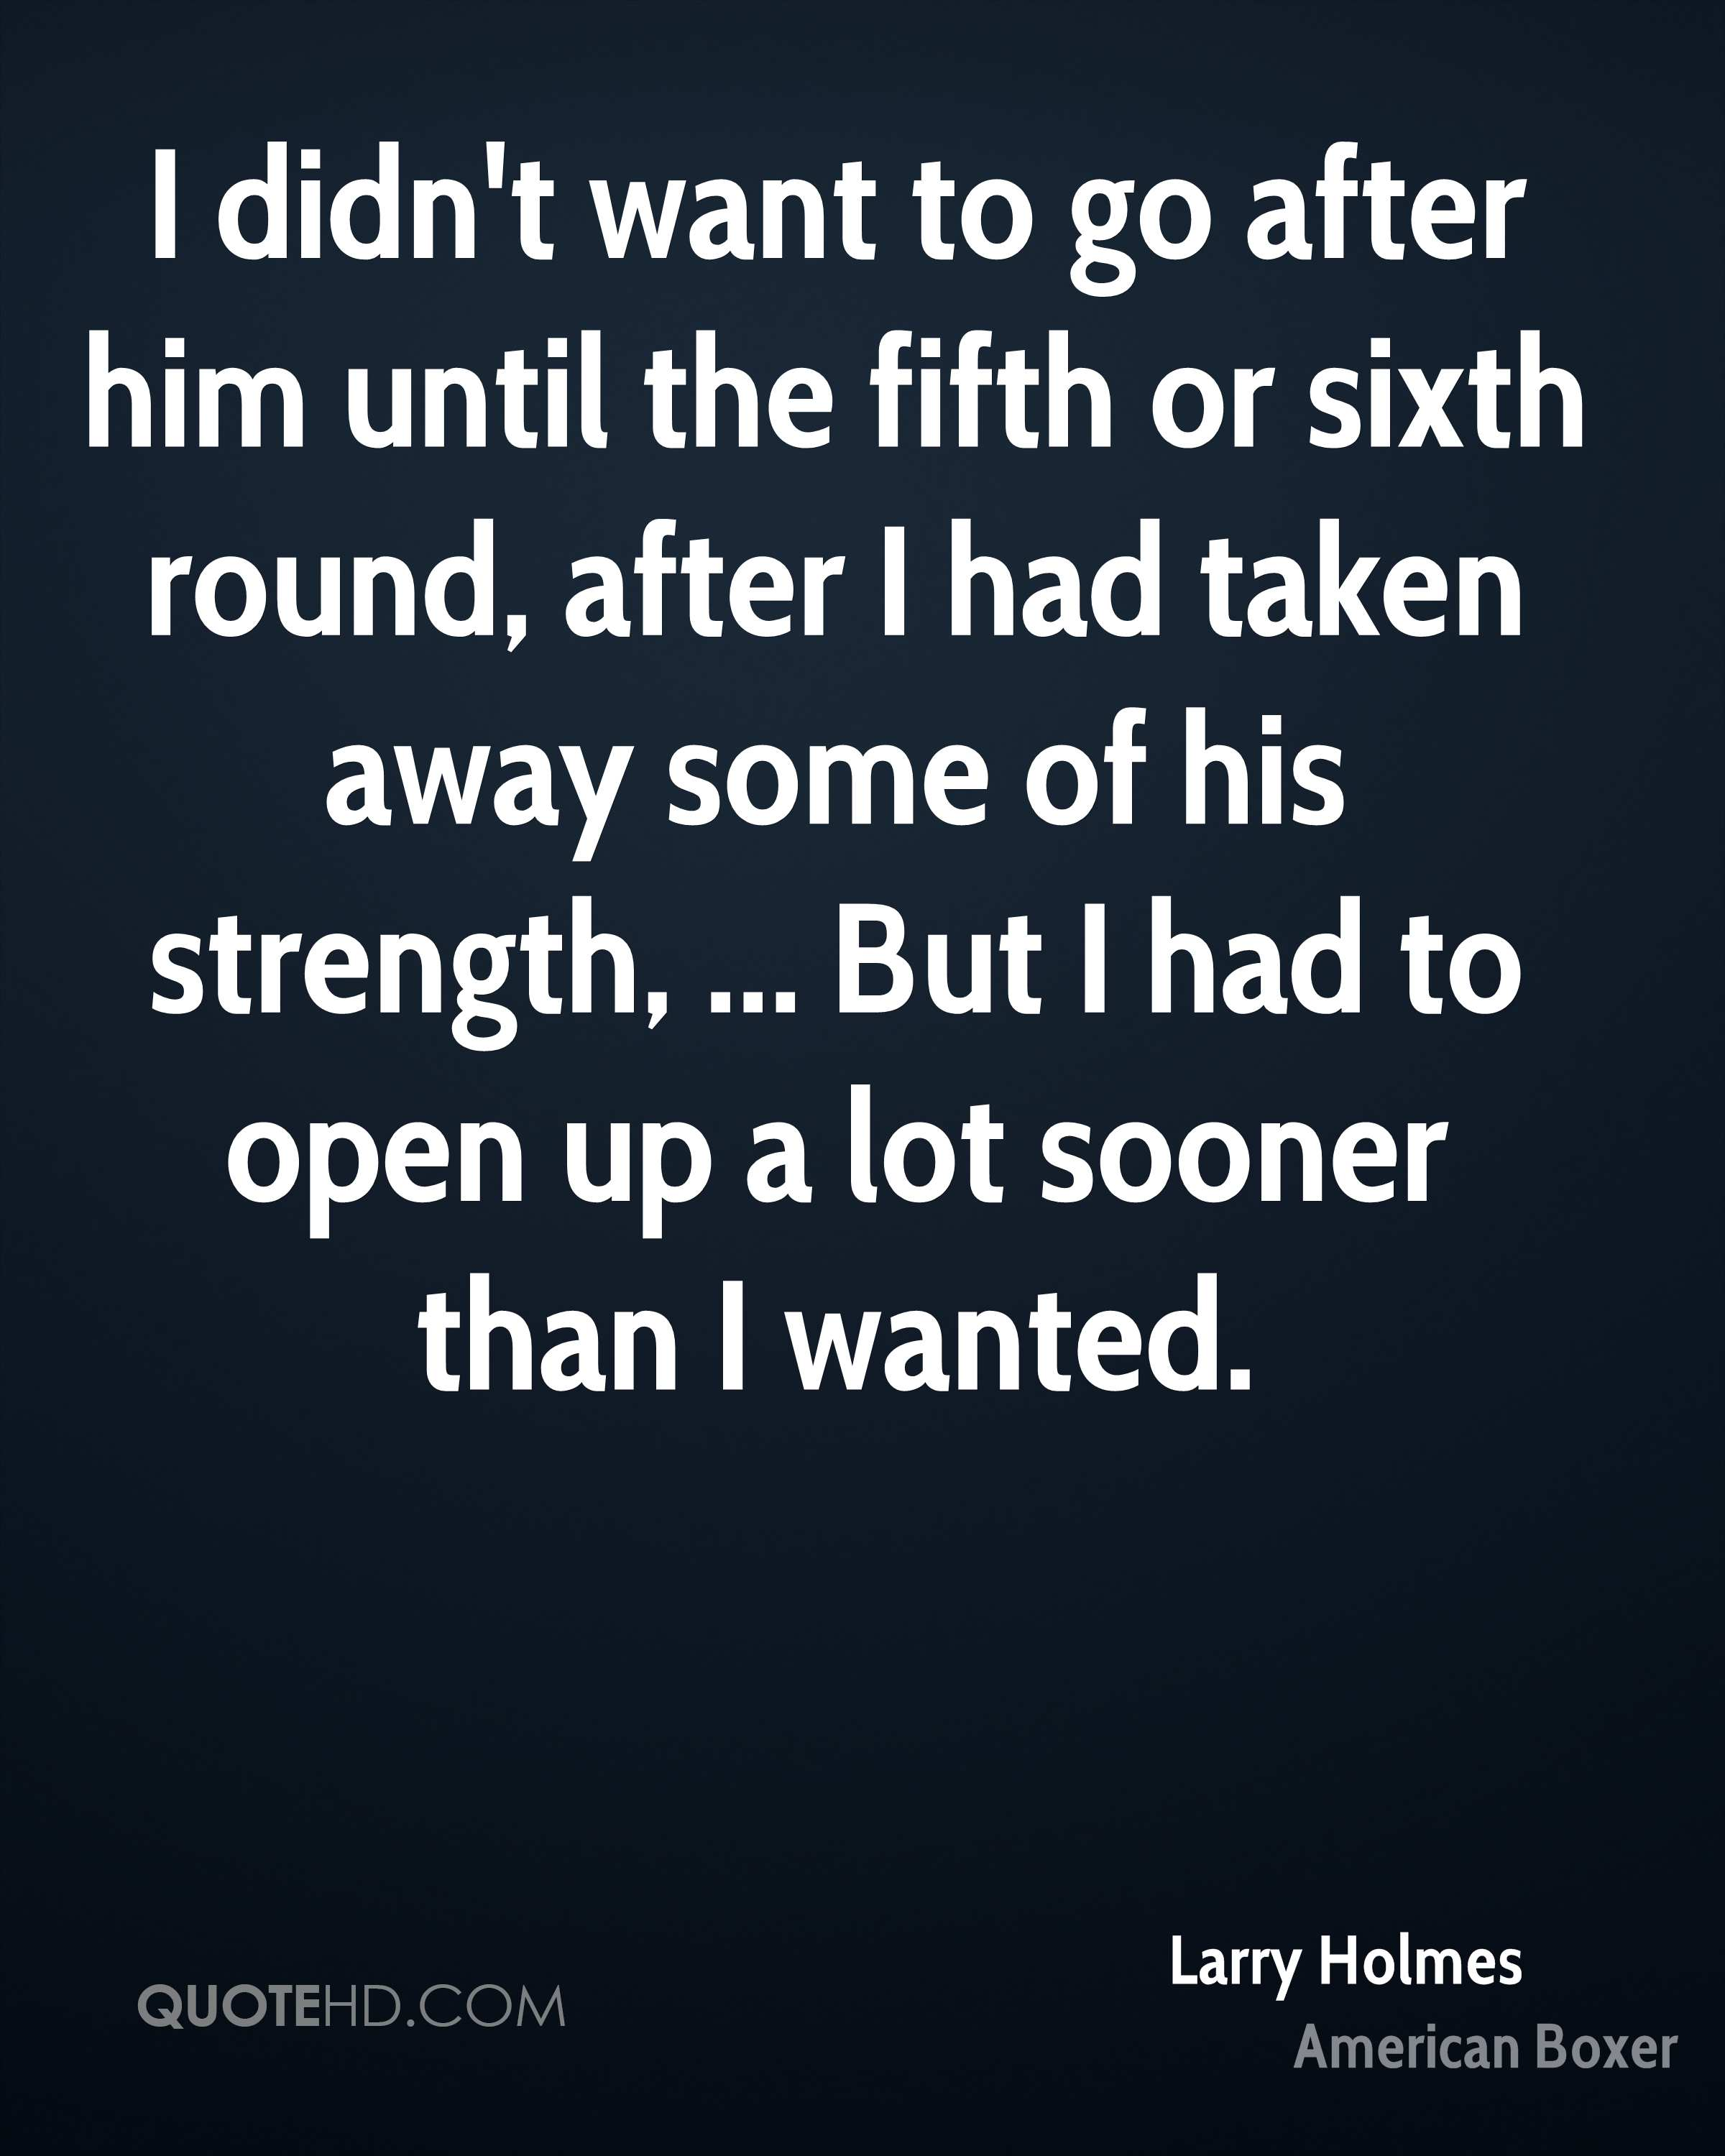 I didn't want to go after him until the fifth or sixth round, after I had taken away some of his strength, ... But I had to open up a lot sooner than I wanted.